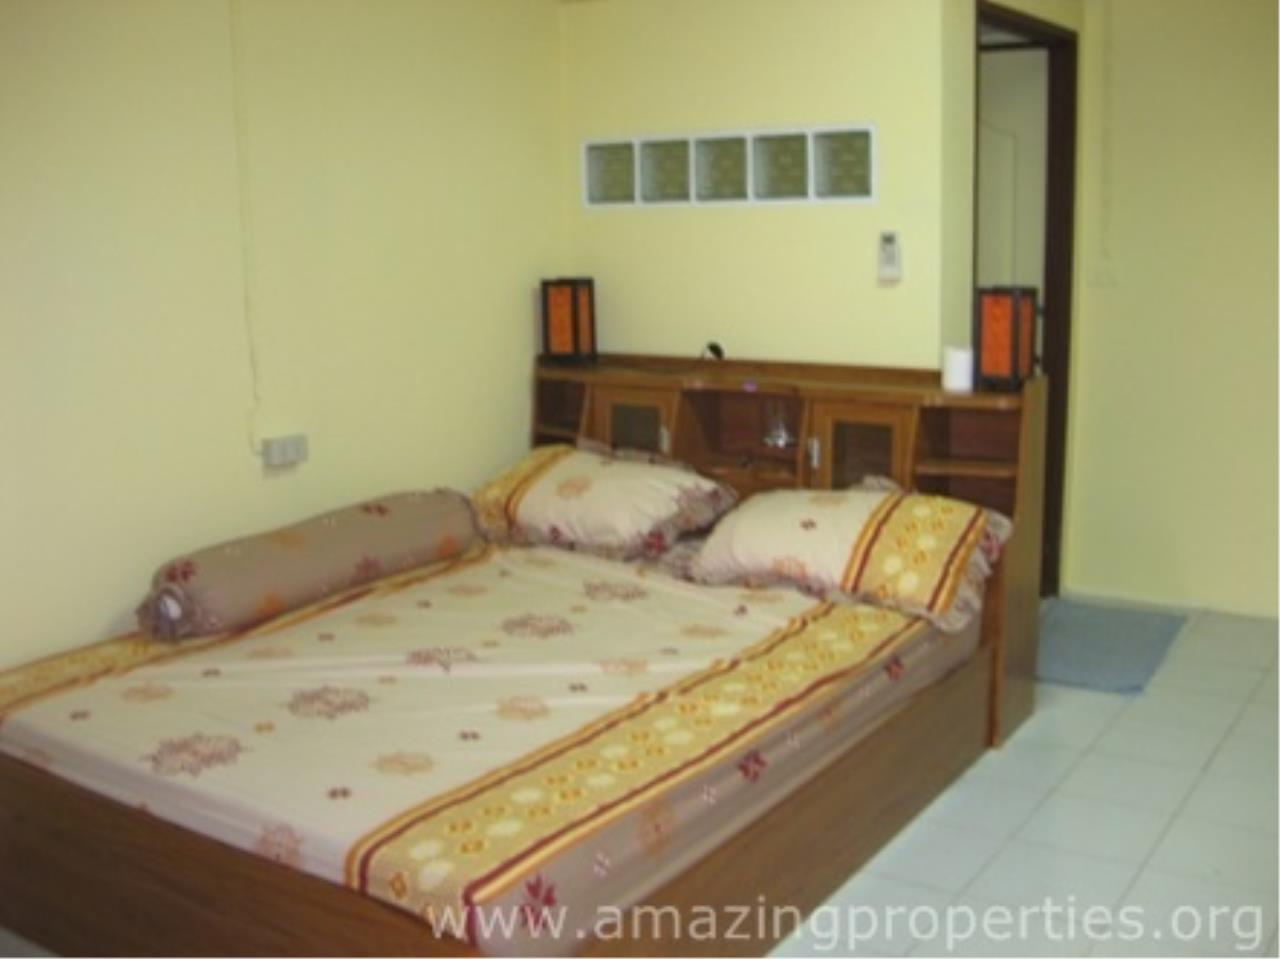 Amazing Properties Agency's Apartment for rent 1